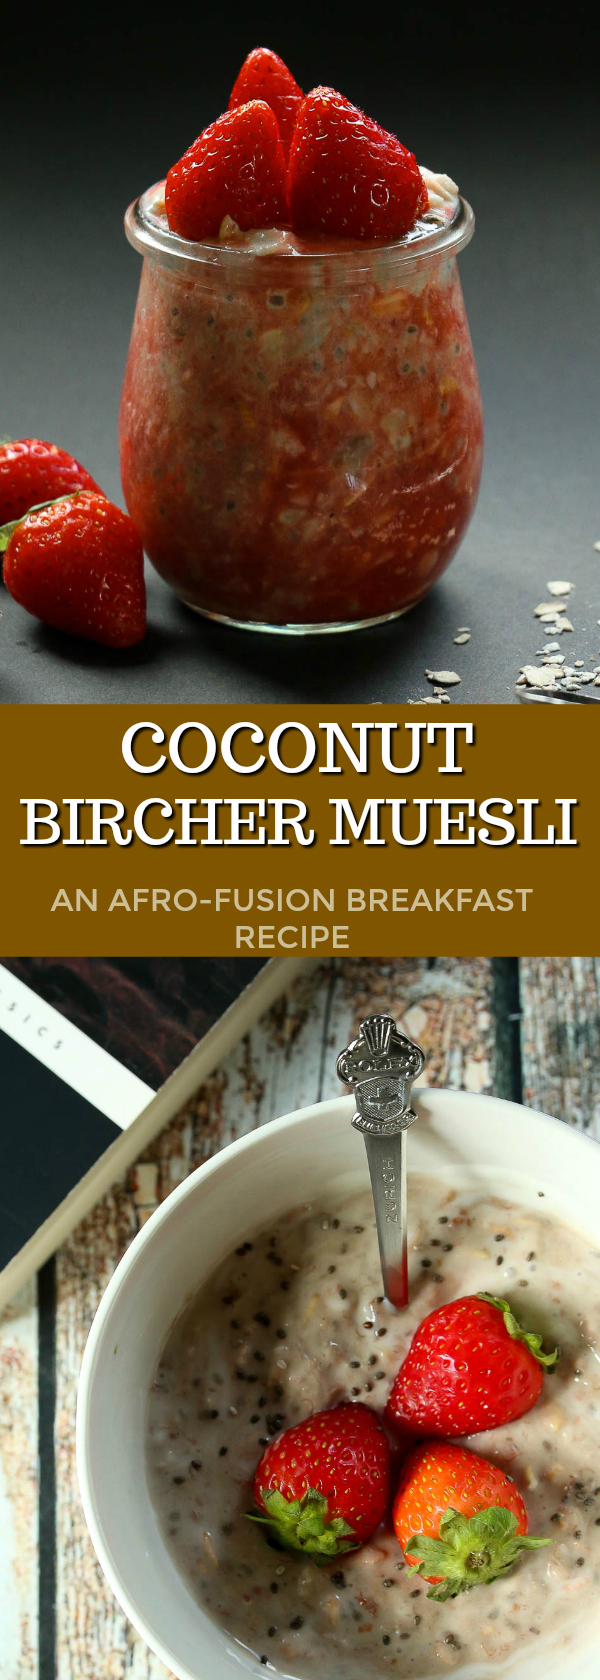 coconut-bircher-muesli-breakfast-recipe